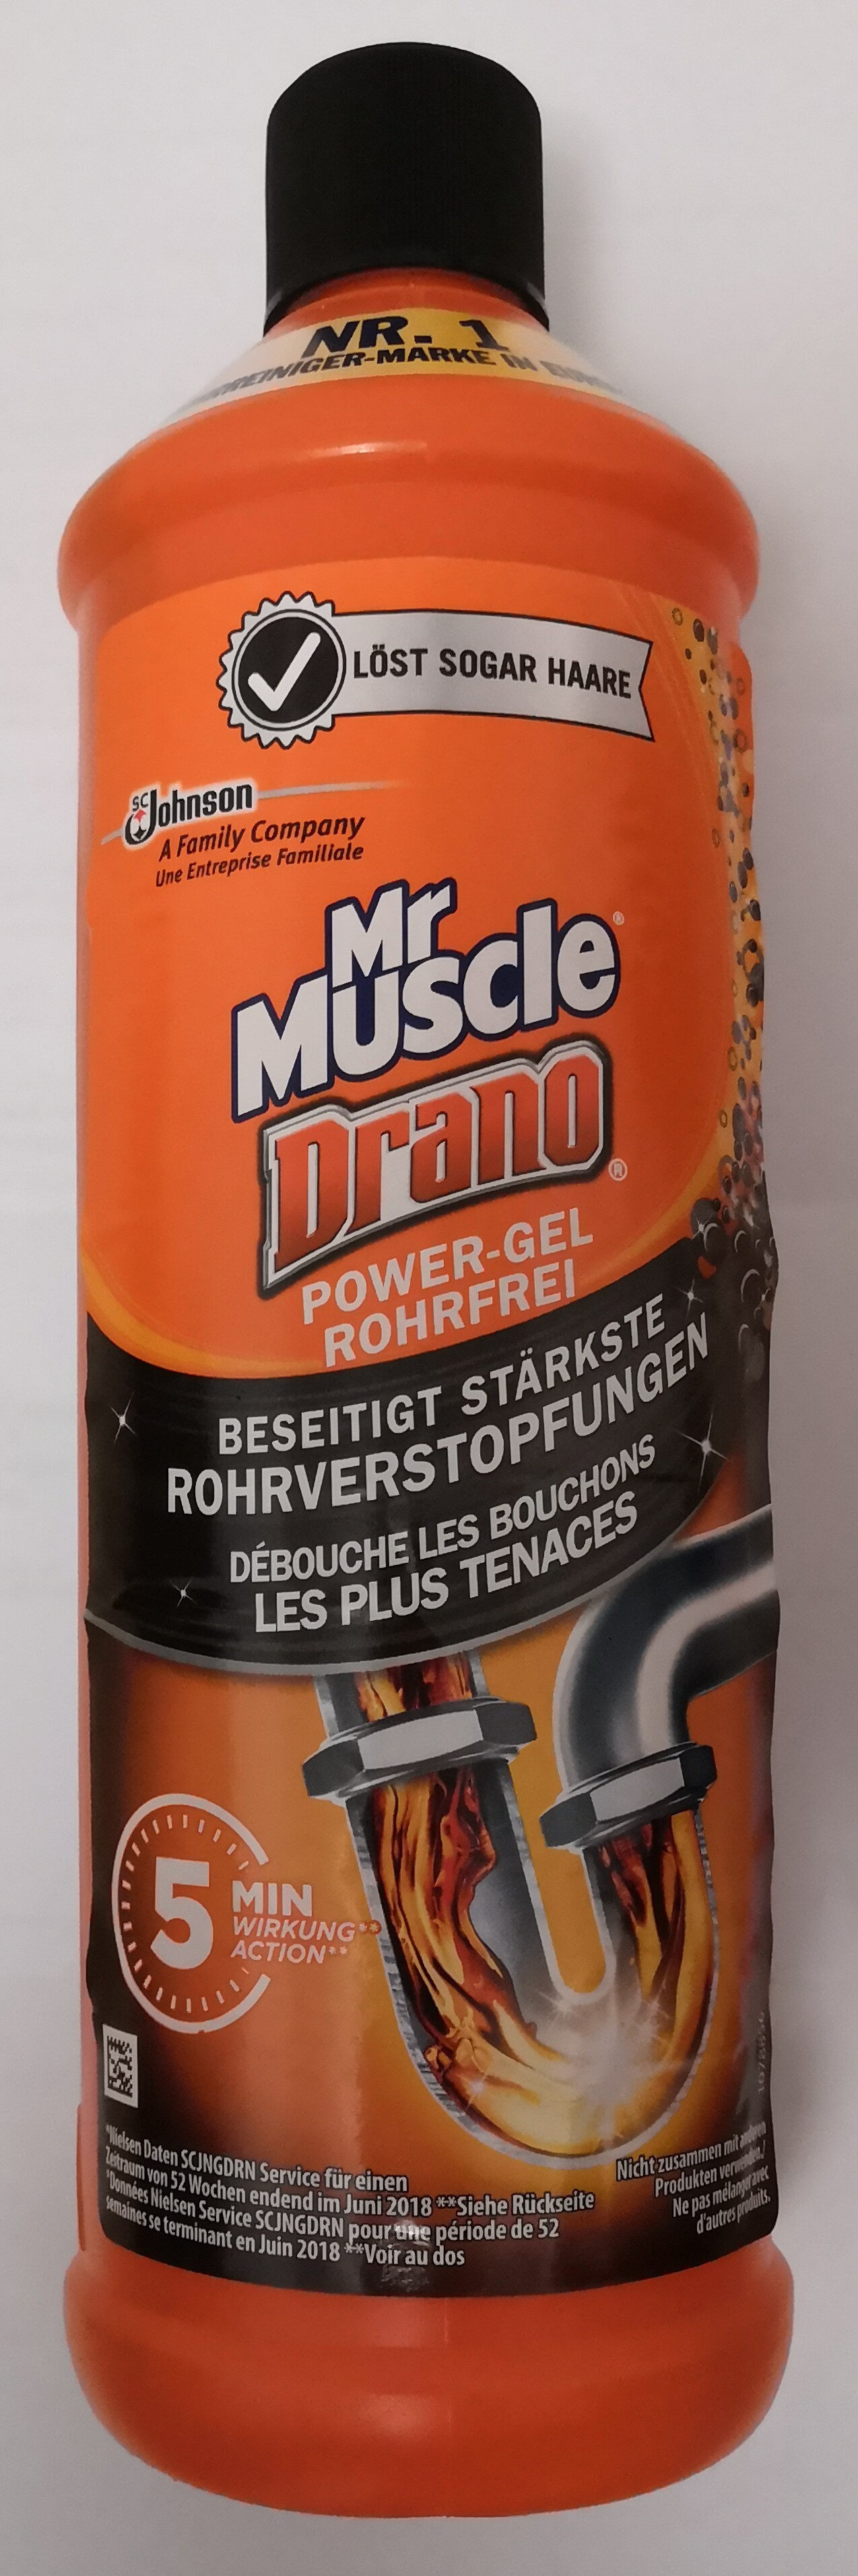 Mr Muscle Drano Power-Gel Rohrfrei - Product - de